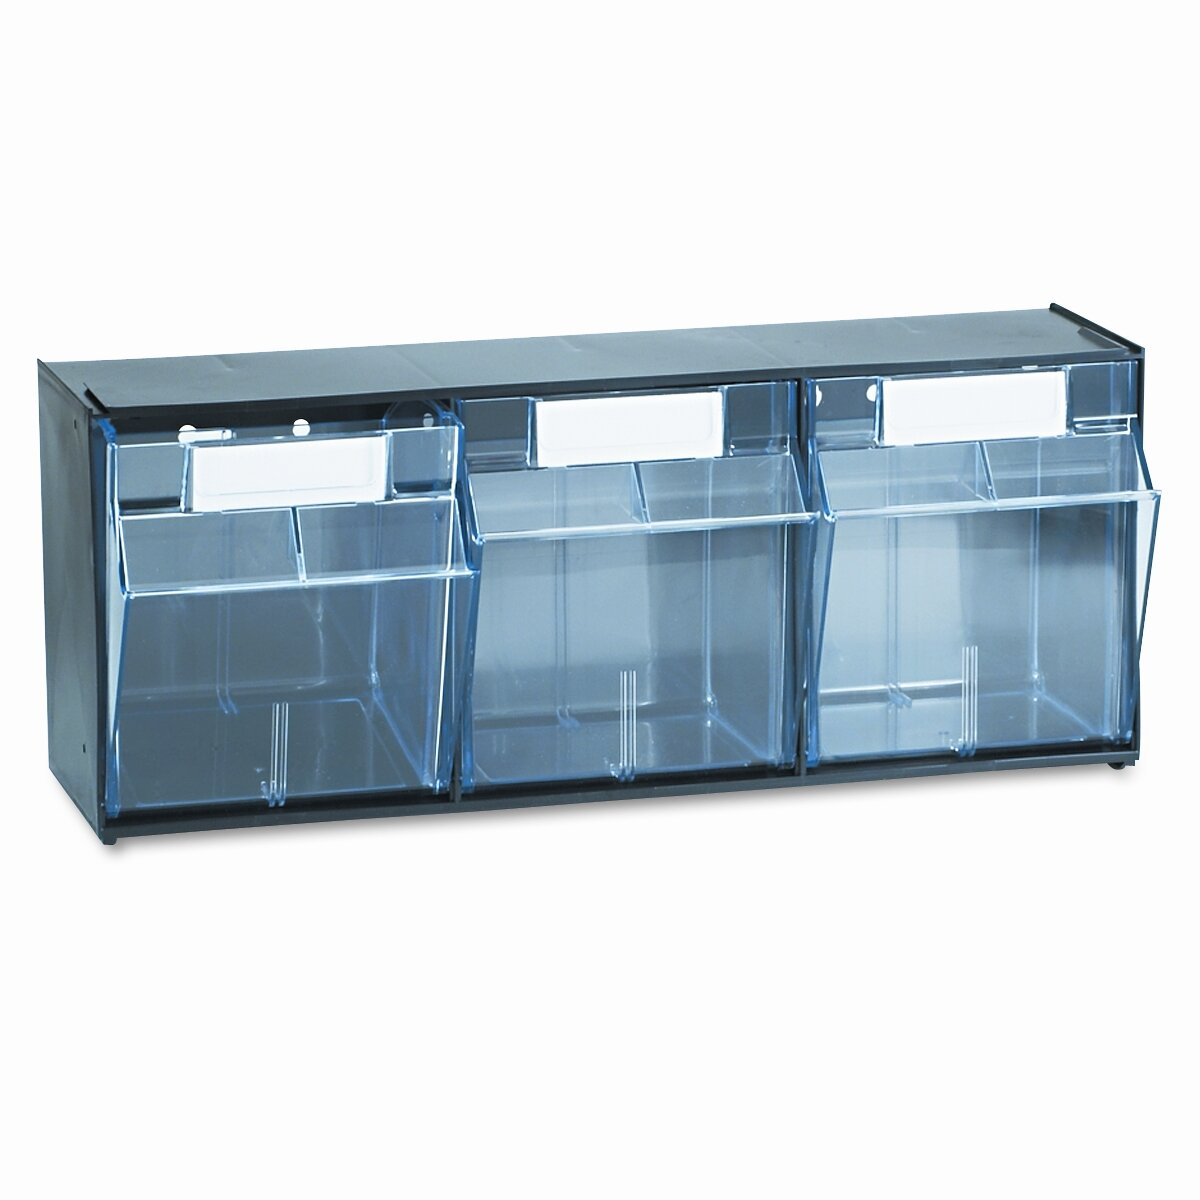 Pvc Storage System : Deflecto tilt bin plastic storage system with bins